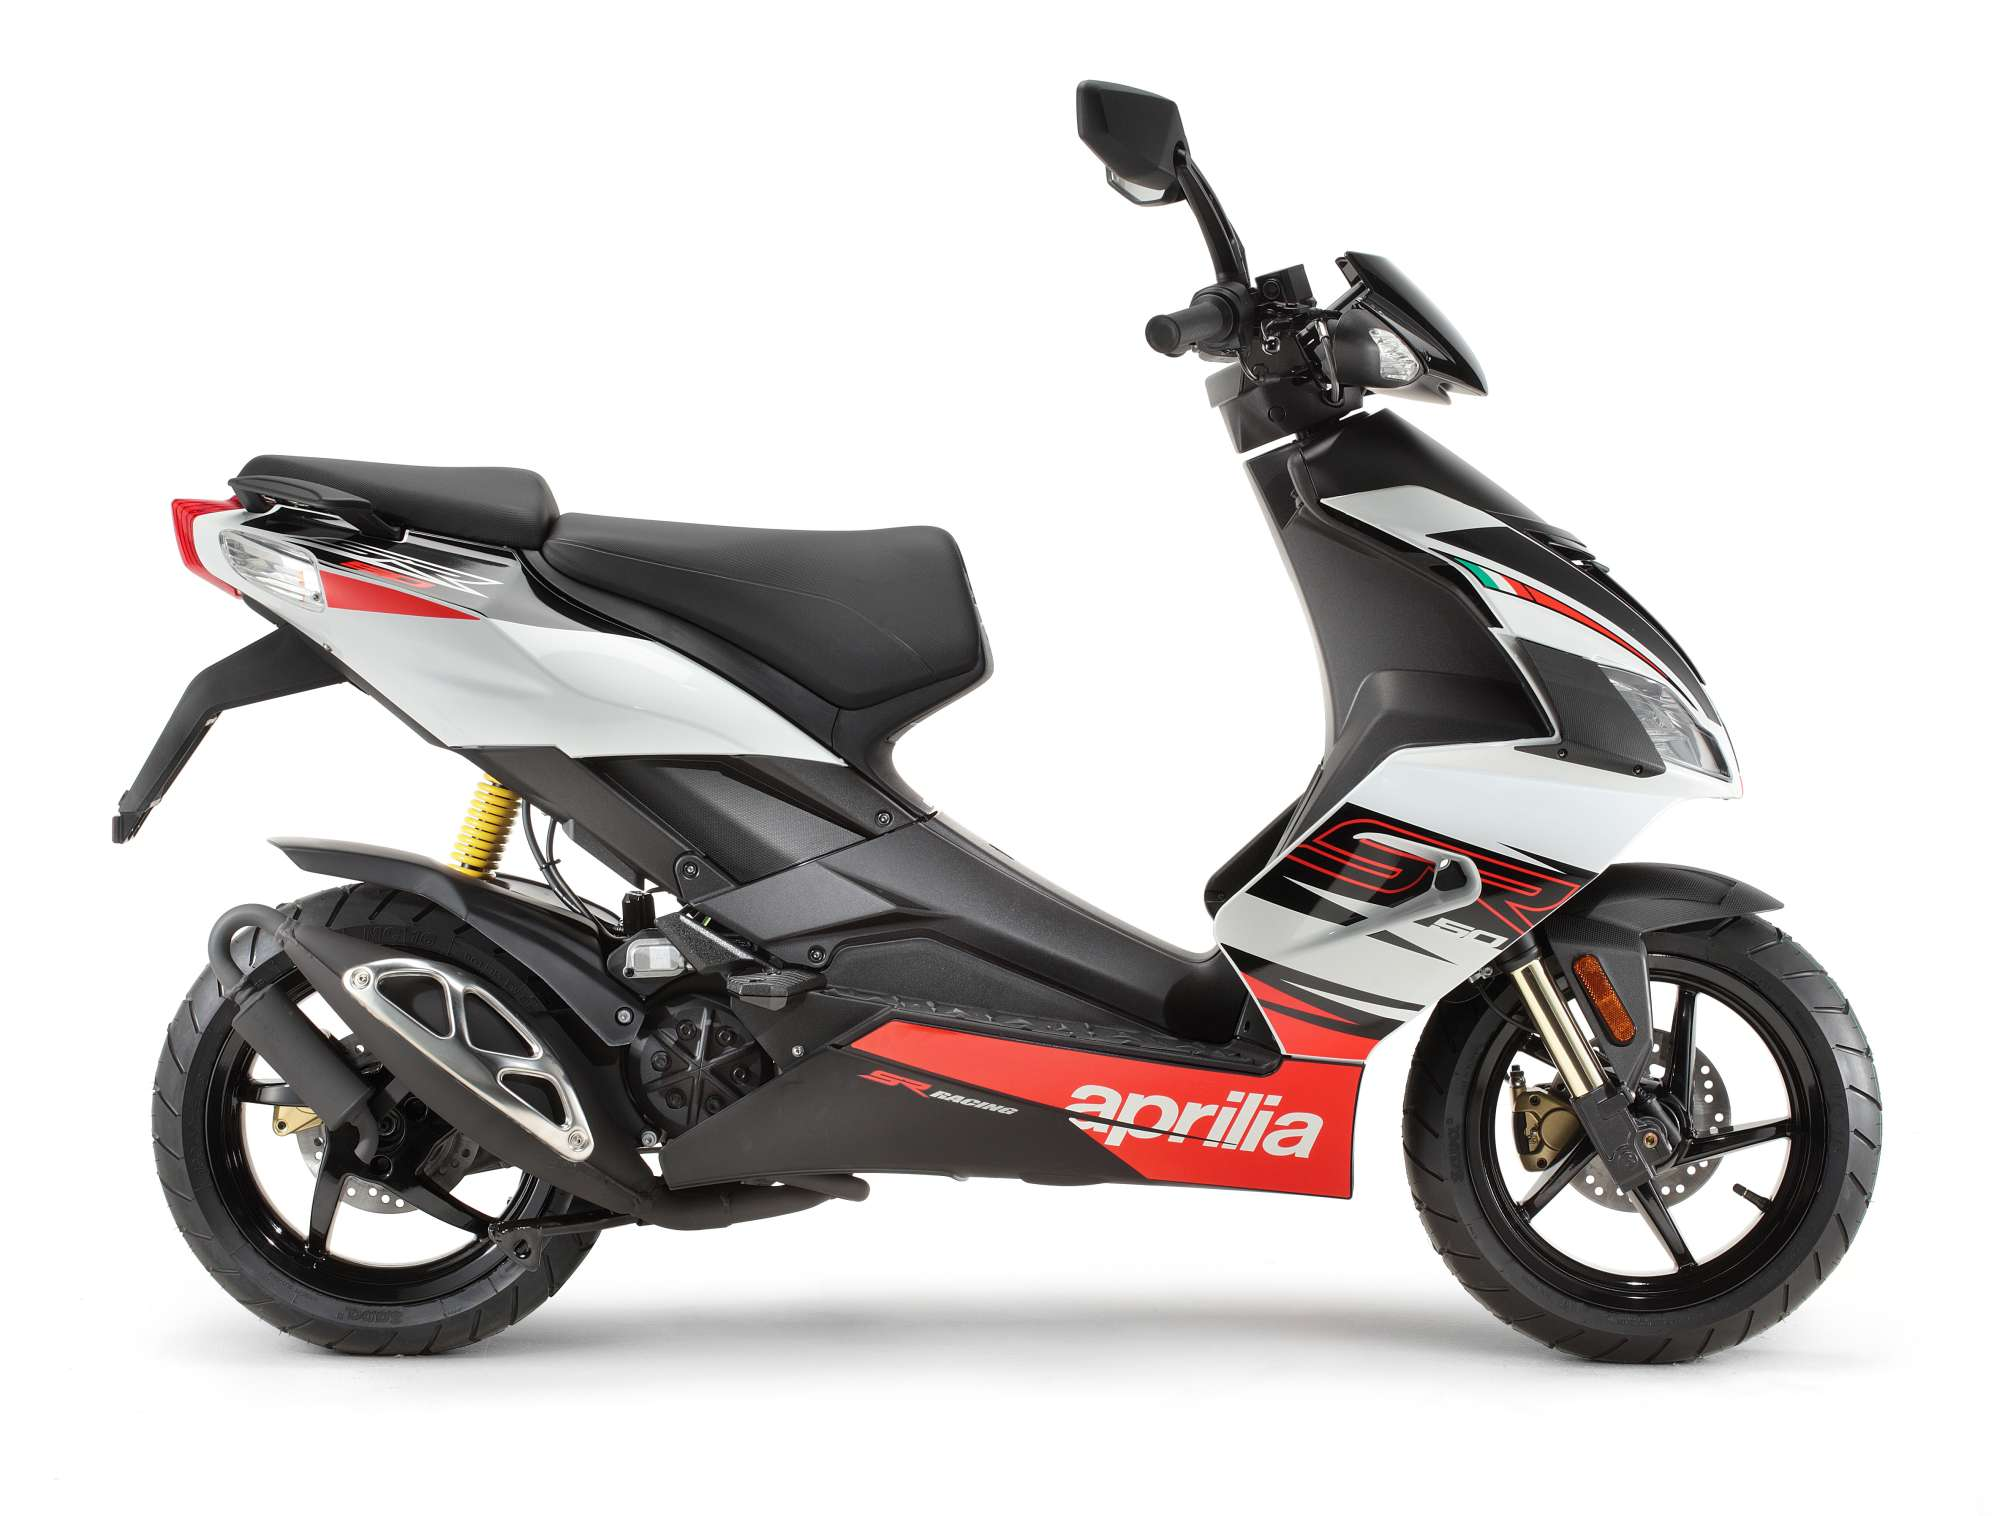 aprilia sr 50 r all technical data of the model sr 50 r from aprilia. Black Bedroom Furniture Sets. Home Design Ideas